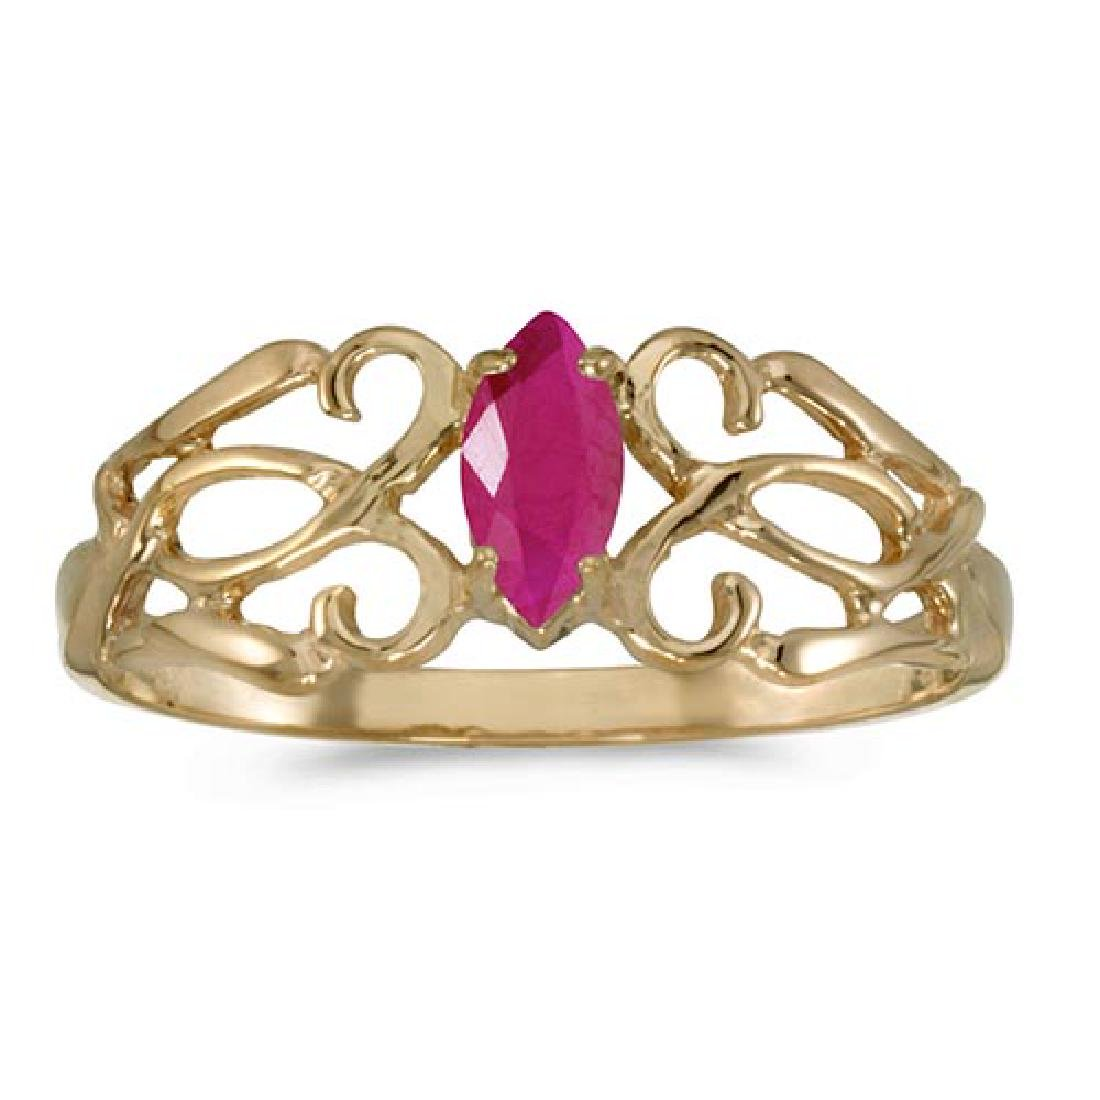 Certified 10k Yellow Gold Marquise Ruby Filagree Ring